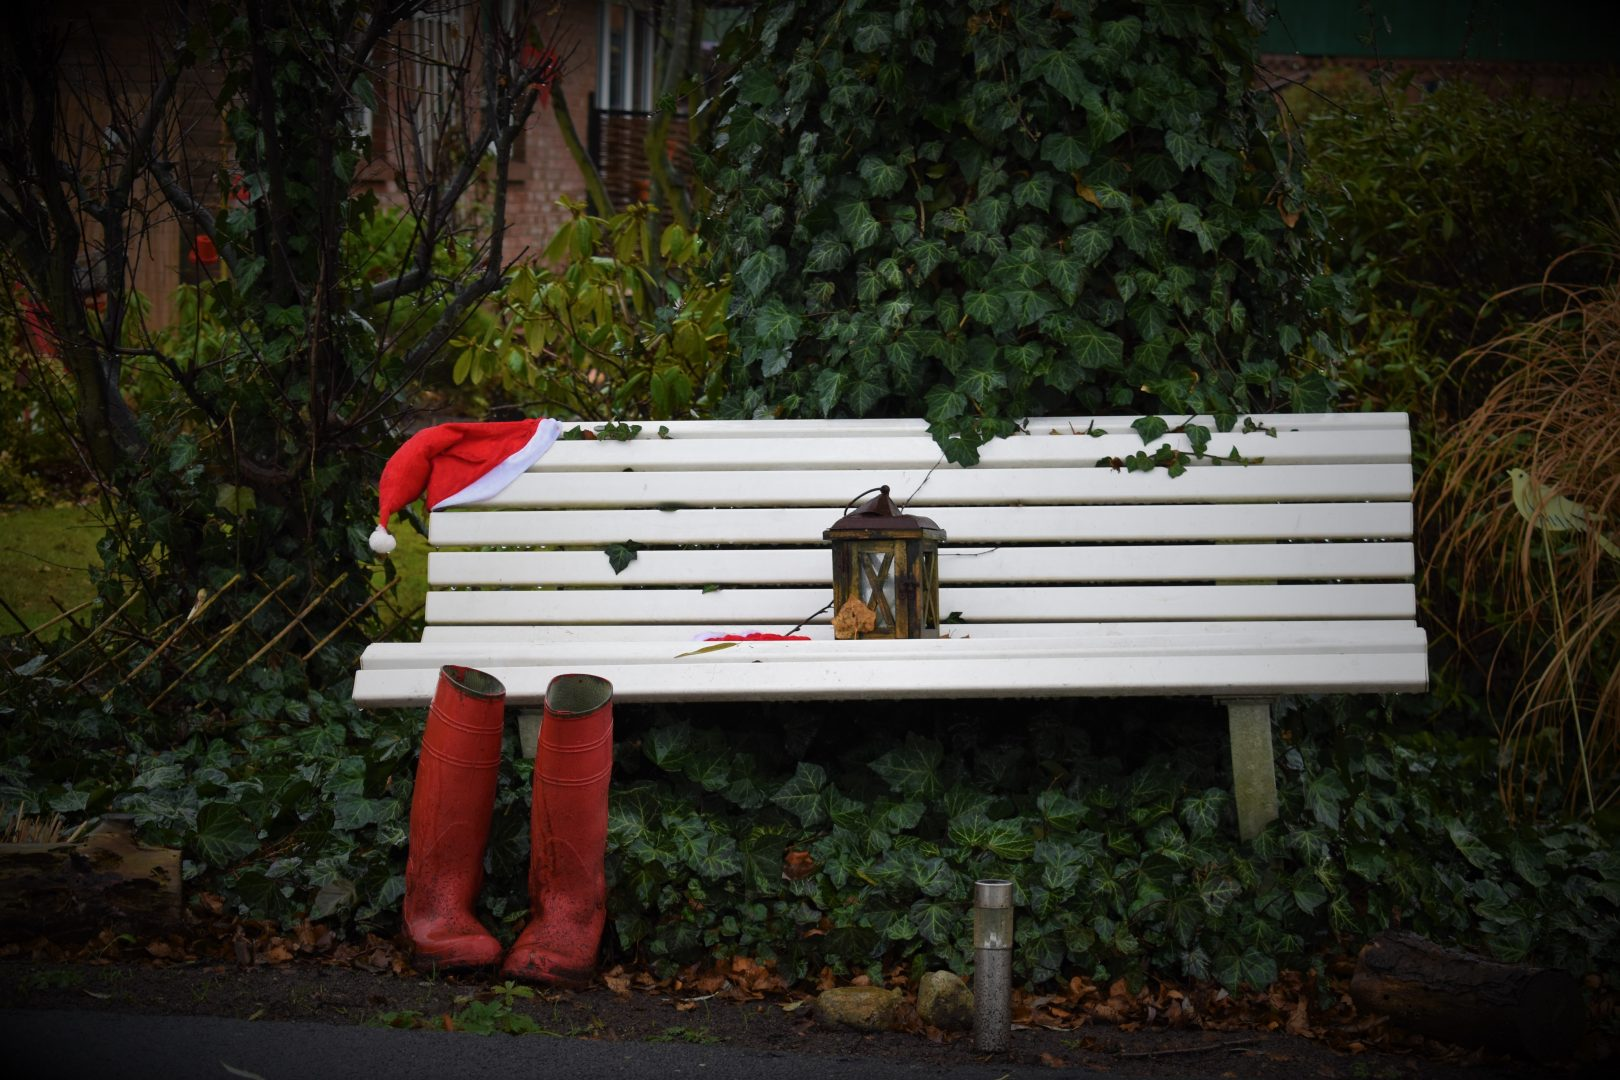 pair of red boots near white bench